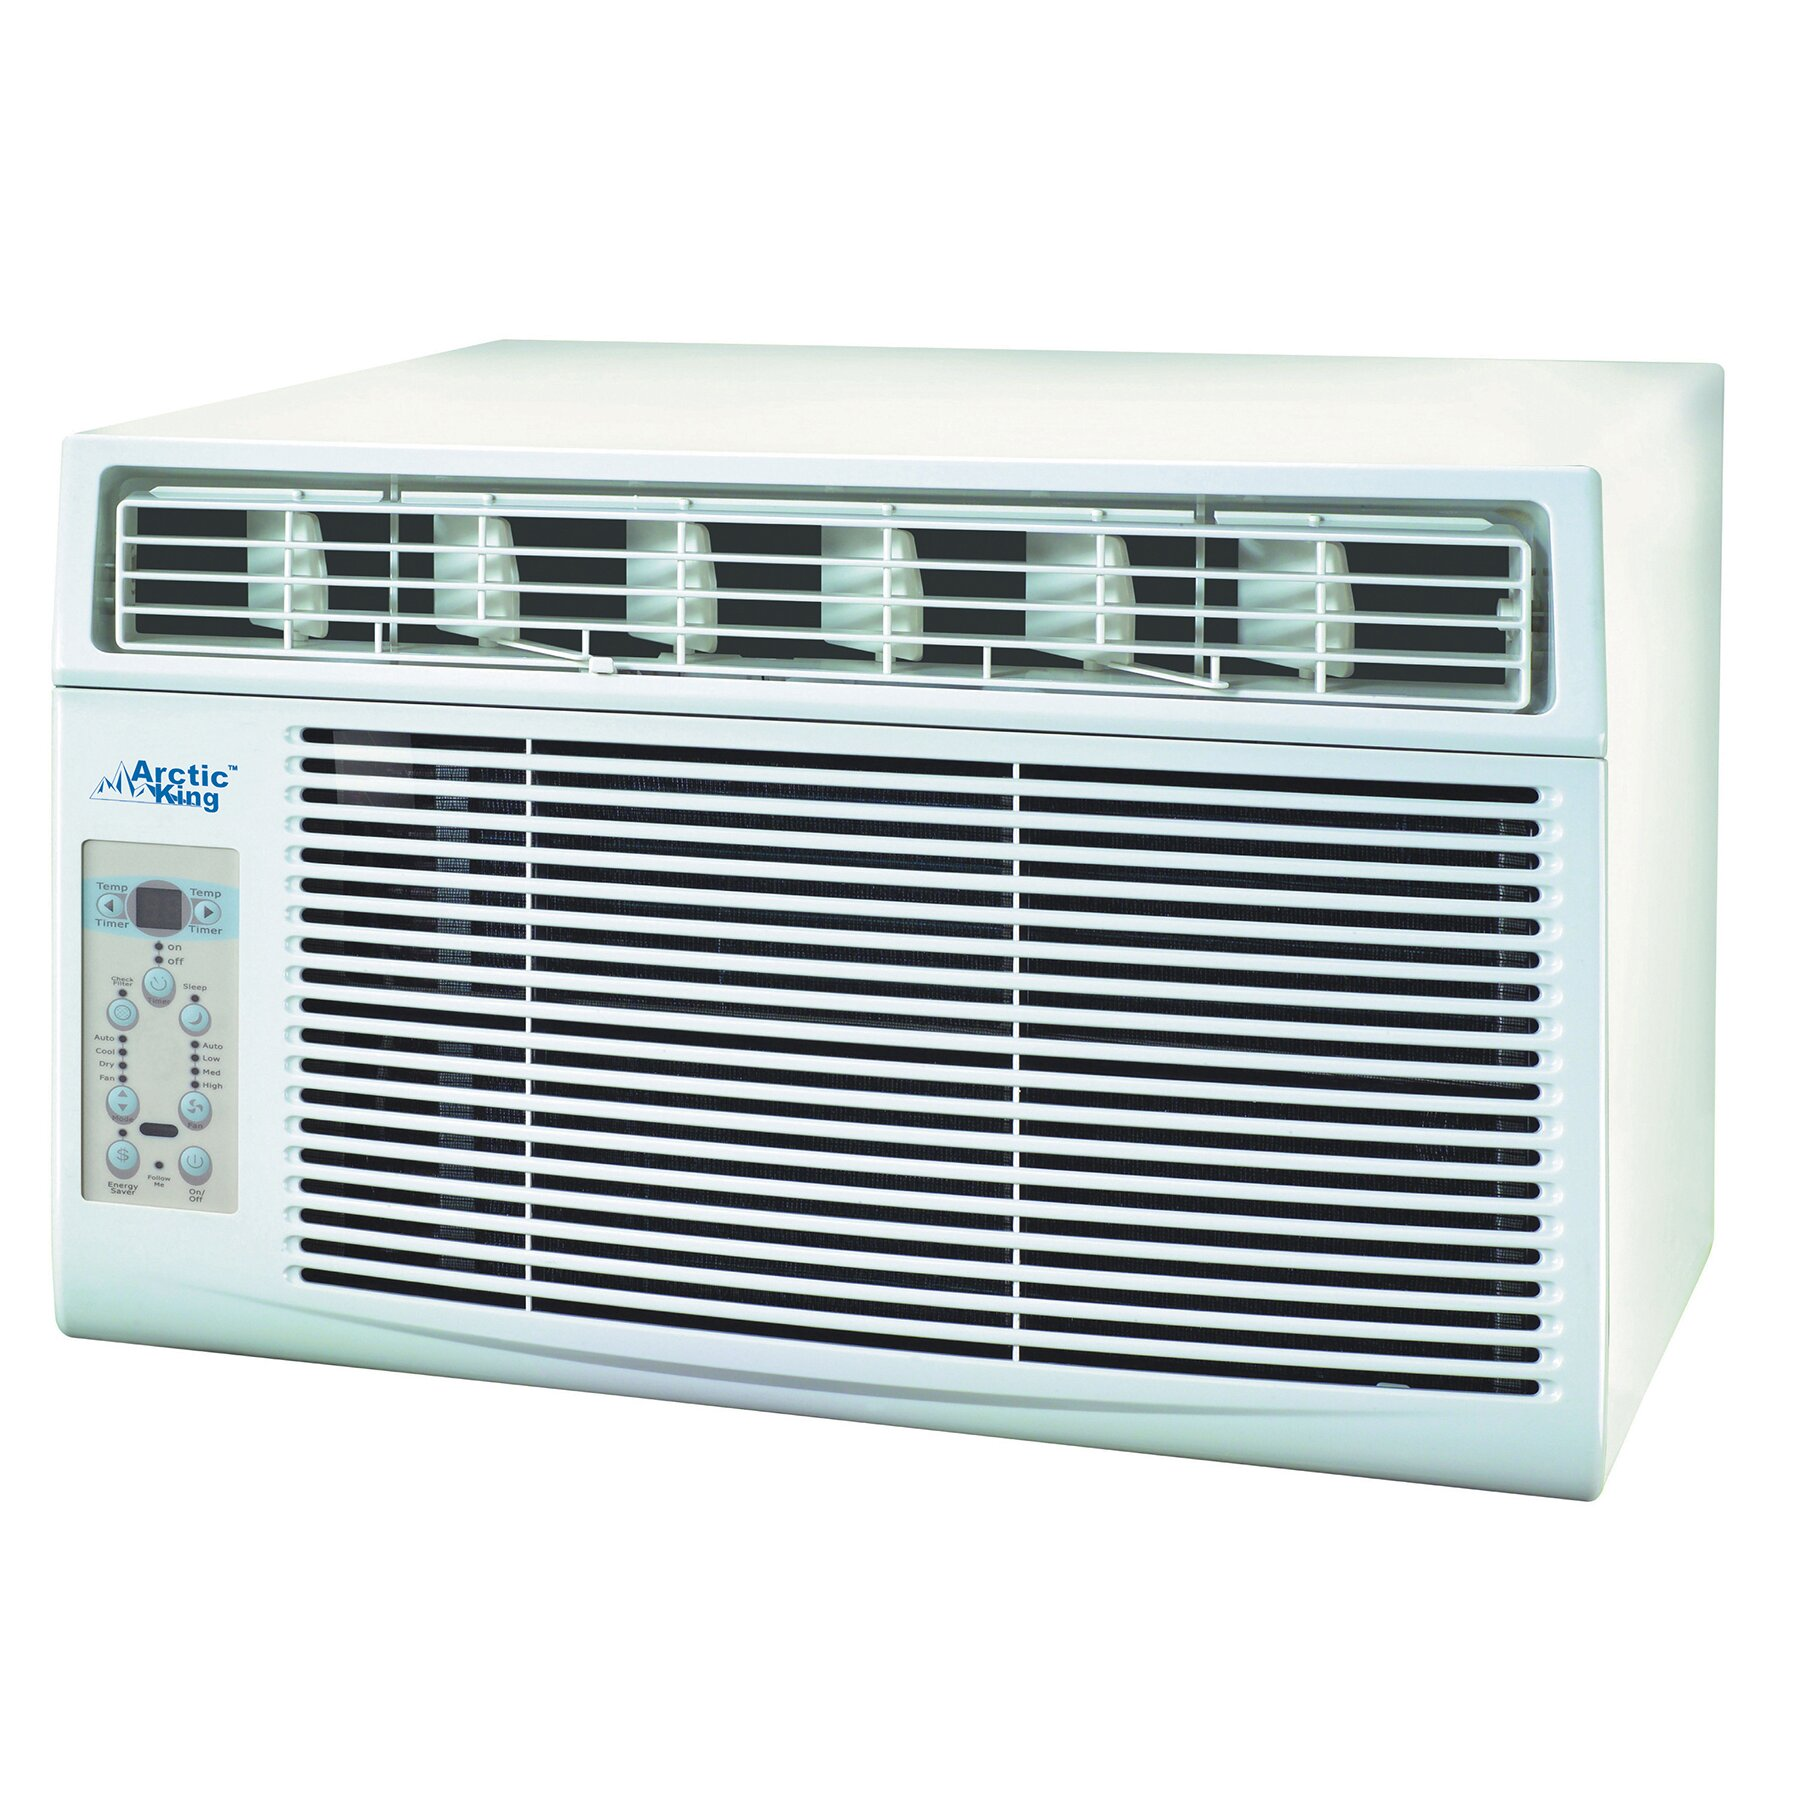 Arctic King 12 000 BTU Window Air Conditioner with Remote & Reviews  #2F6E9C